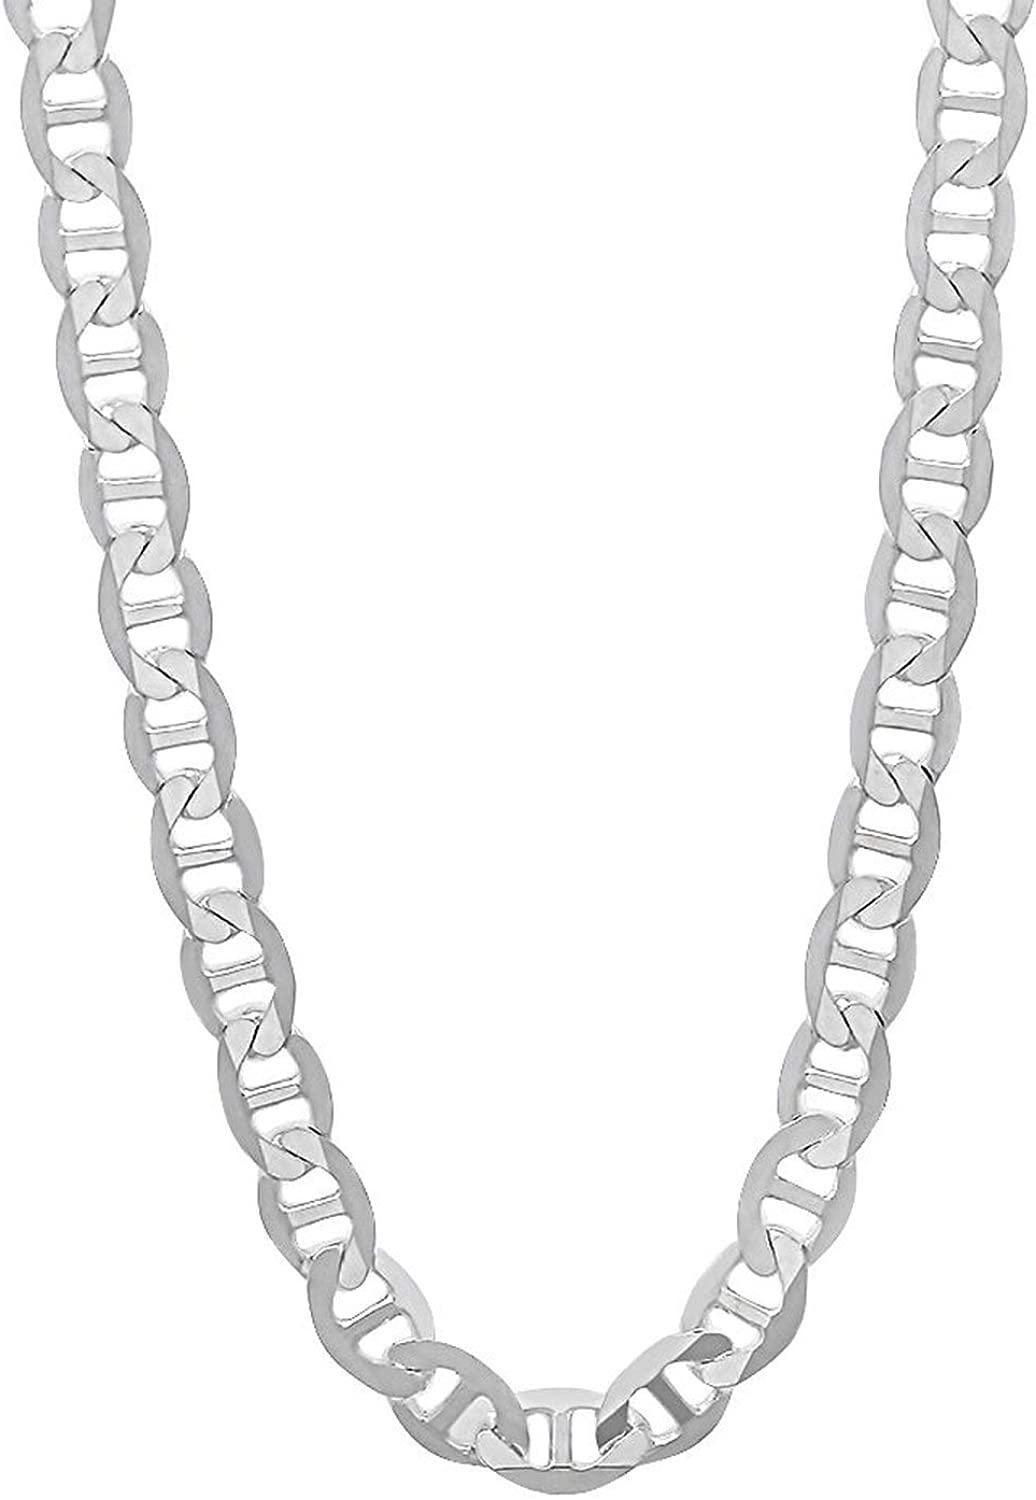 Pori Jewelers 925 Sterling Silver 2mm, 3mm, 3.5mm, 5.5mm Flat Mariner/Marina Link Chain Necklace